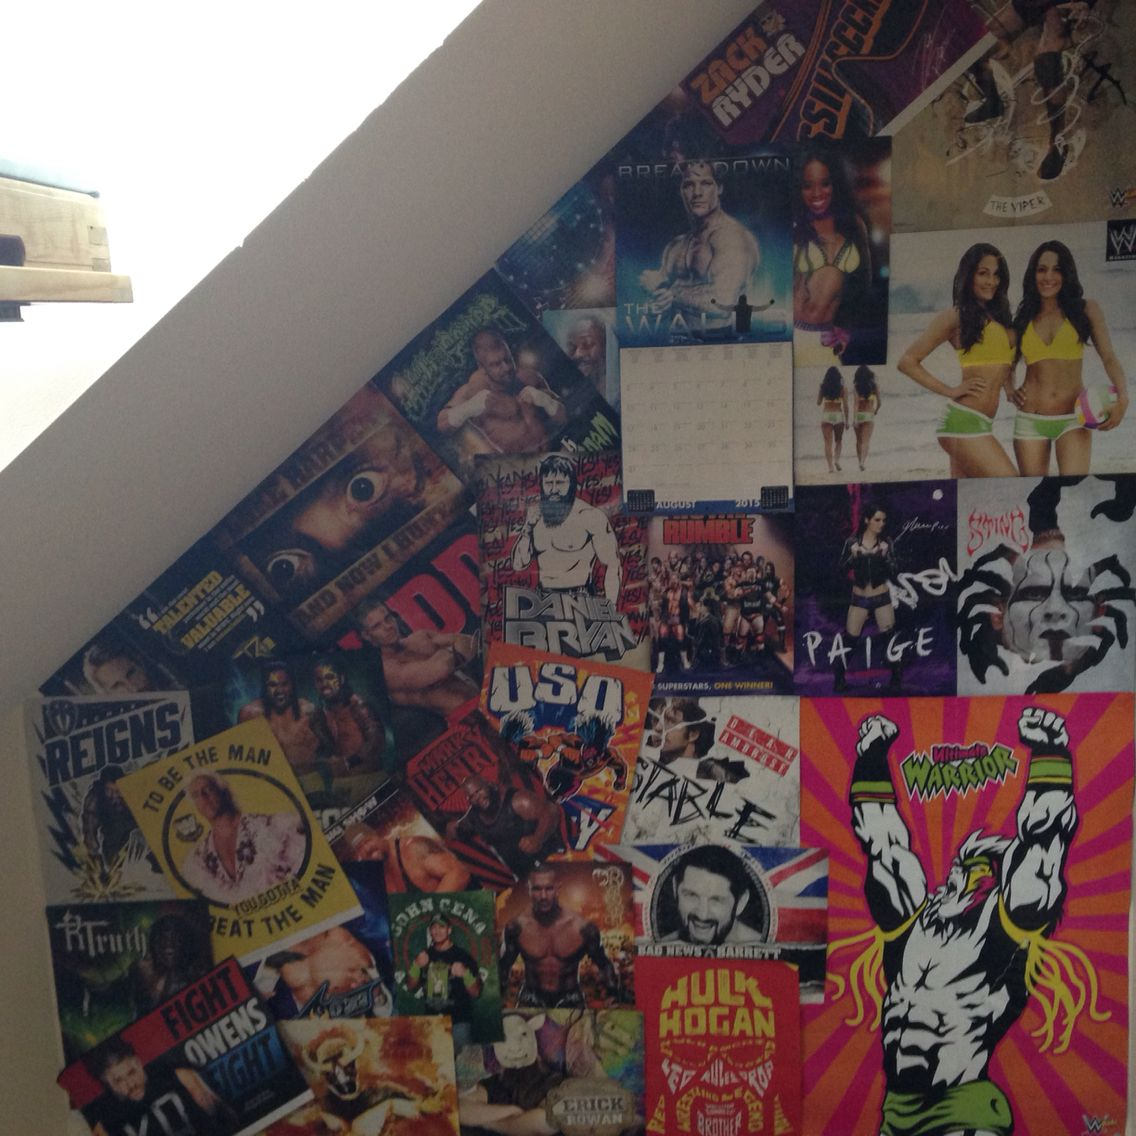 Wwe Bedroom Decor: WWE Bedroom Ideas-poster Wall